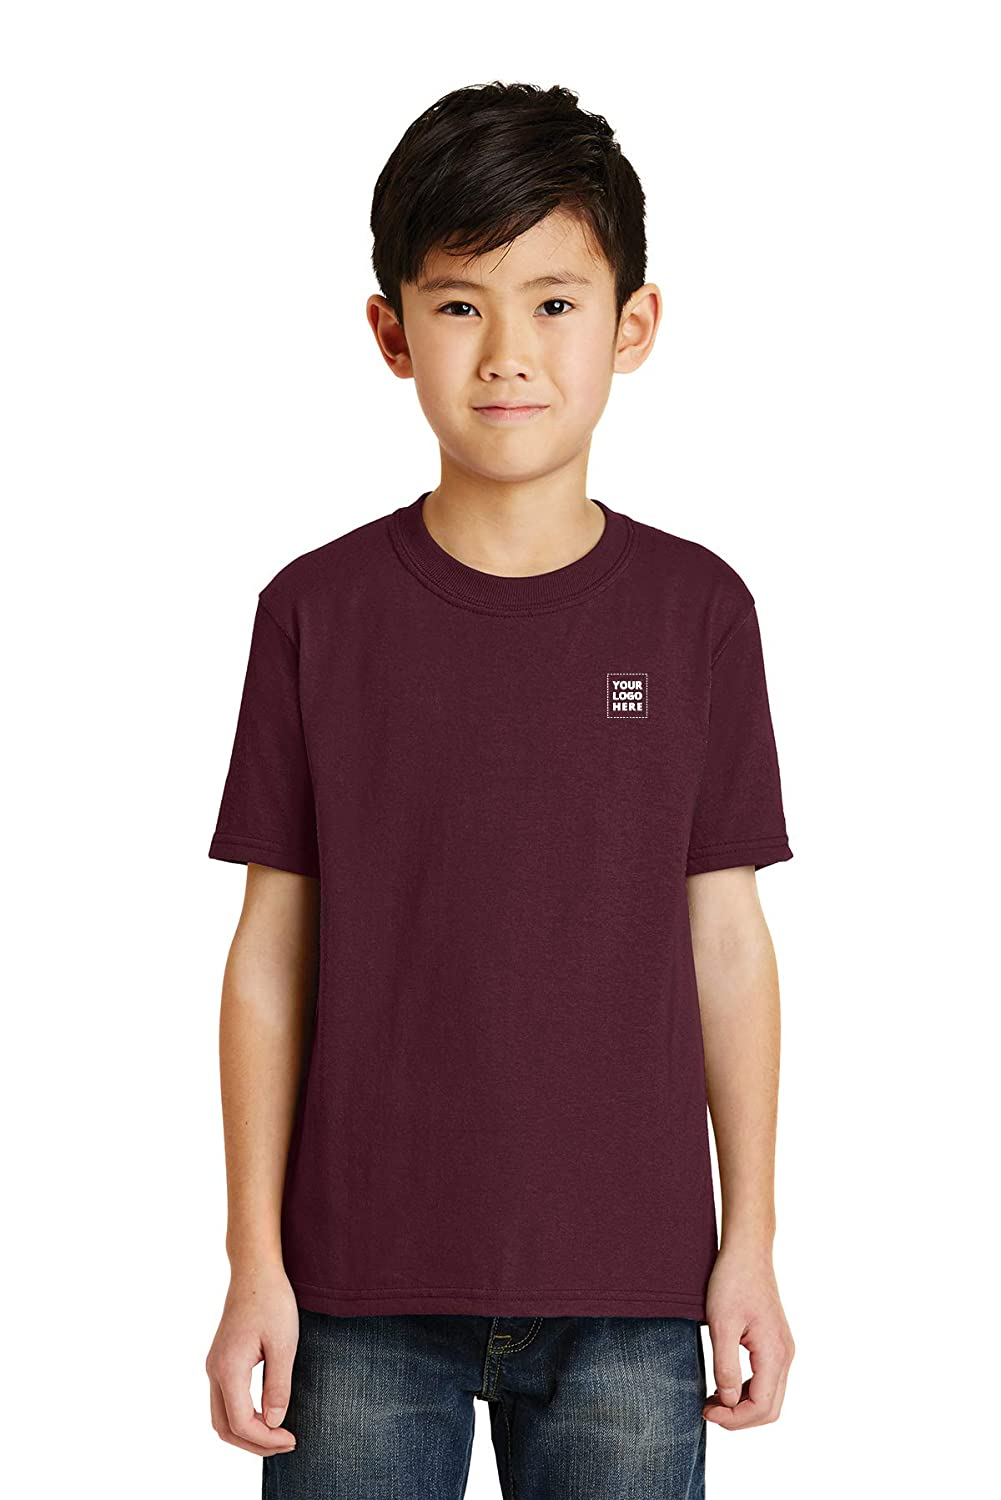 24 Qty Promo Direct Youth Core Blend Tee Customized Tee w//Your Imprinted Logo